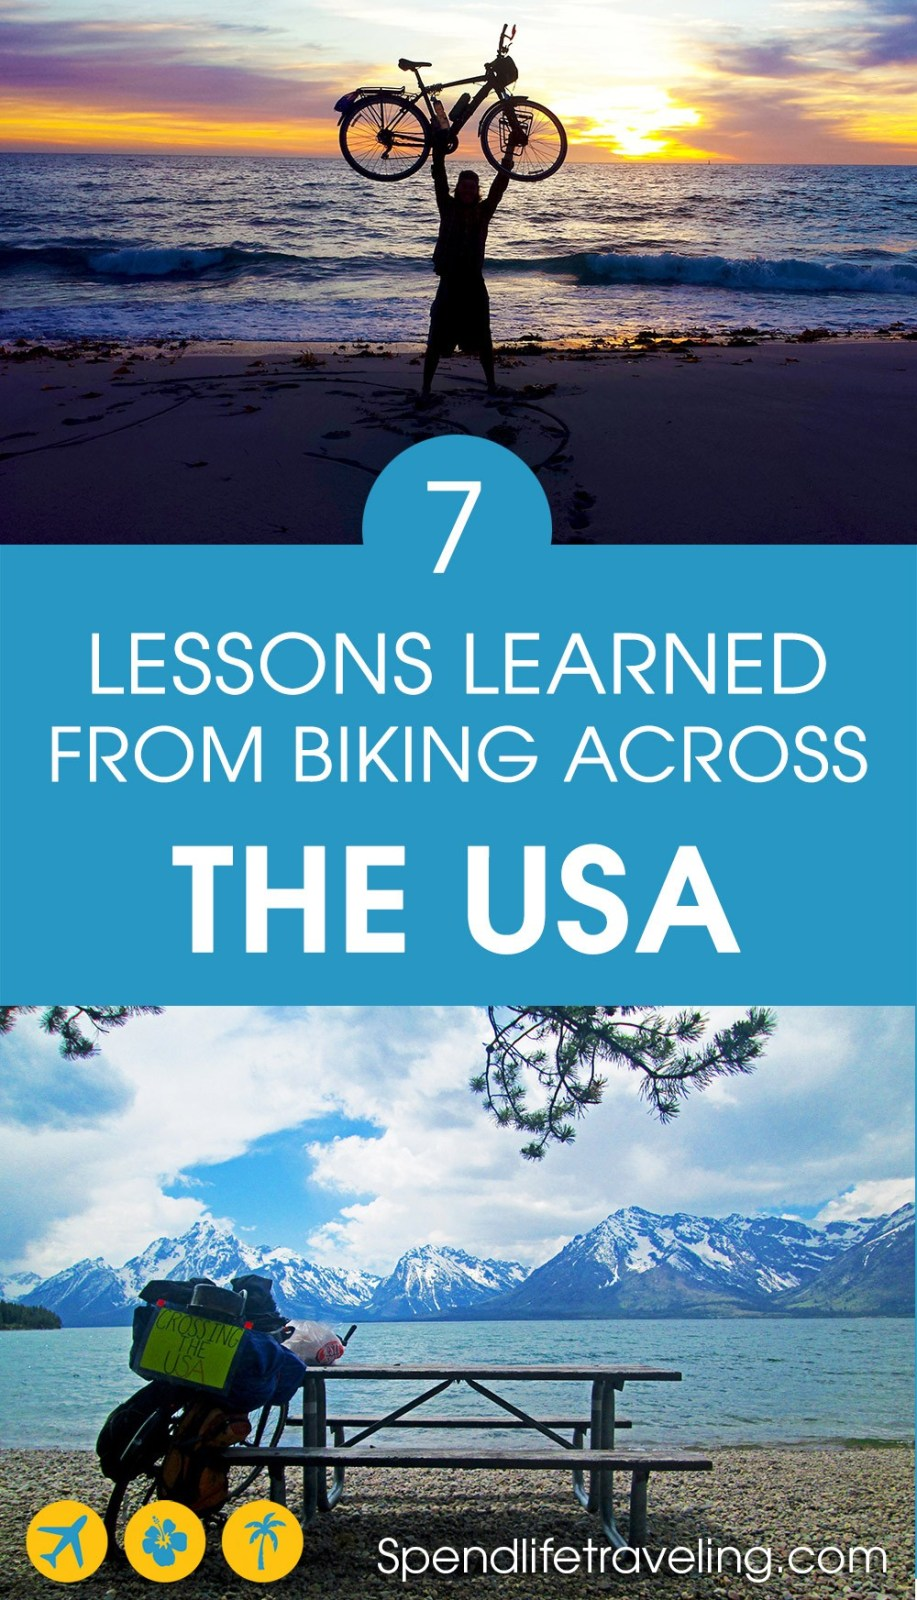 If you have ever thought about going on a long biking trip you want to read this inspiring story! After biking across the USA these are Daniel's tips and lessons learned. His goal: to become the first person to bike across all seven continents. #biking #outdooradventure #bikeacrossAmerica #adventuretravel #traveltheworld